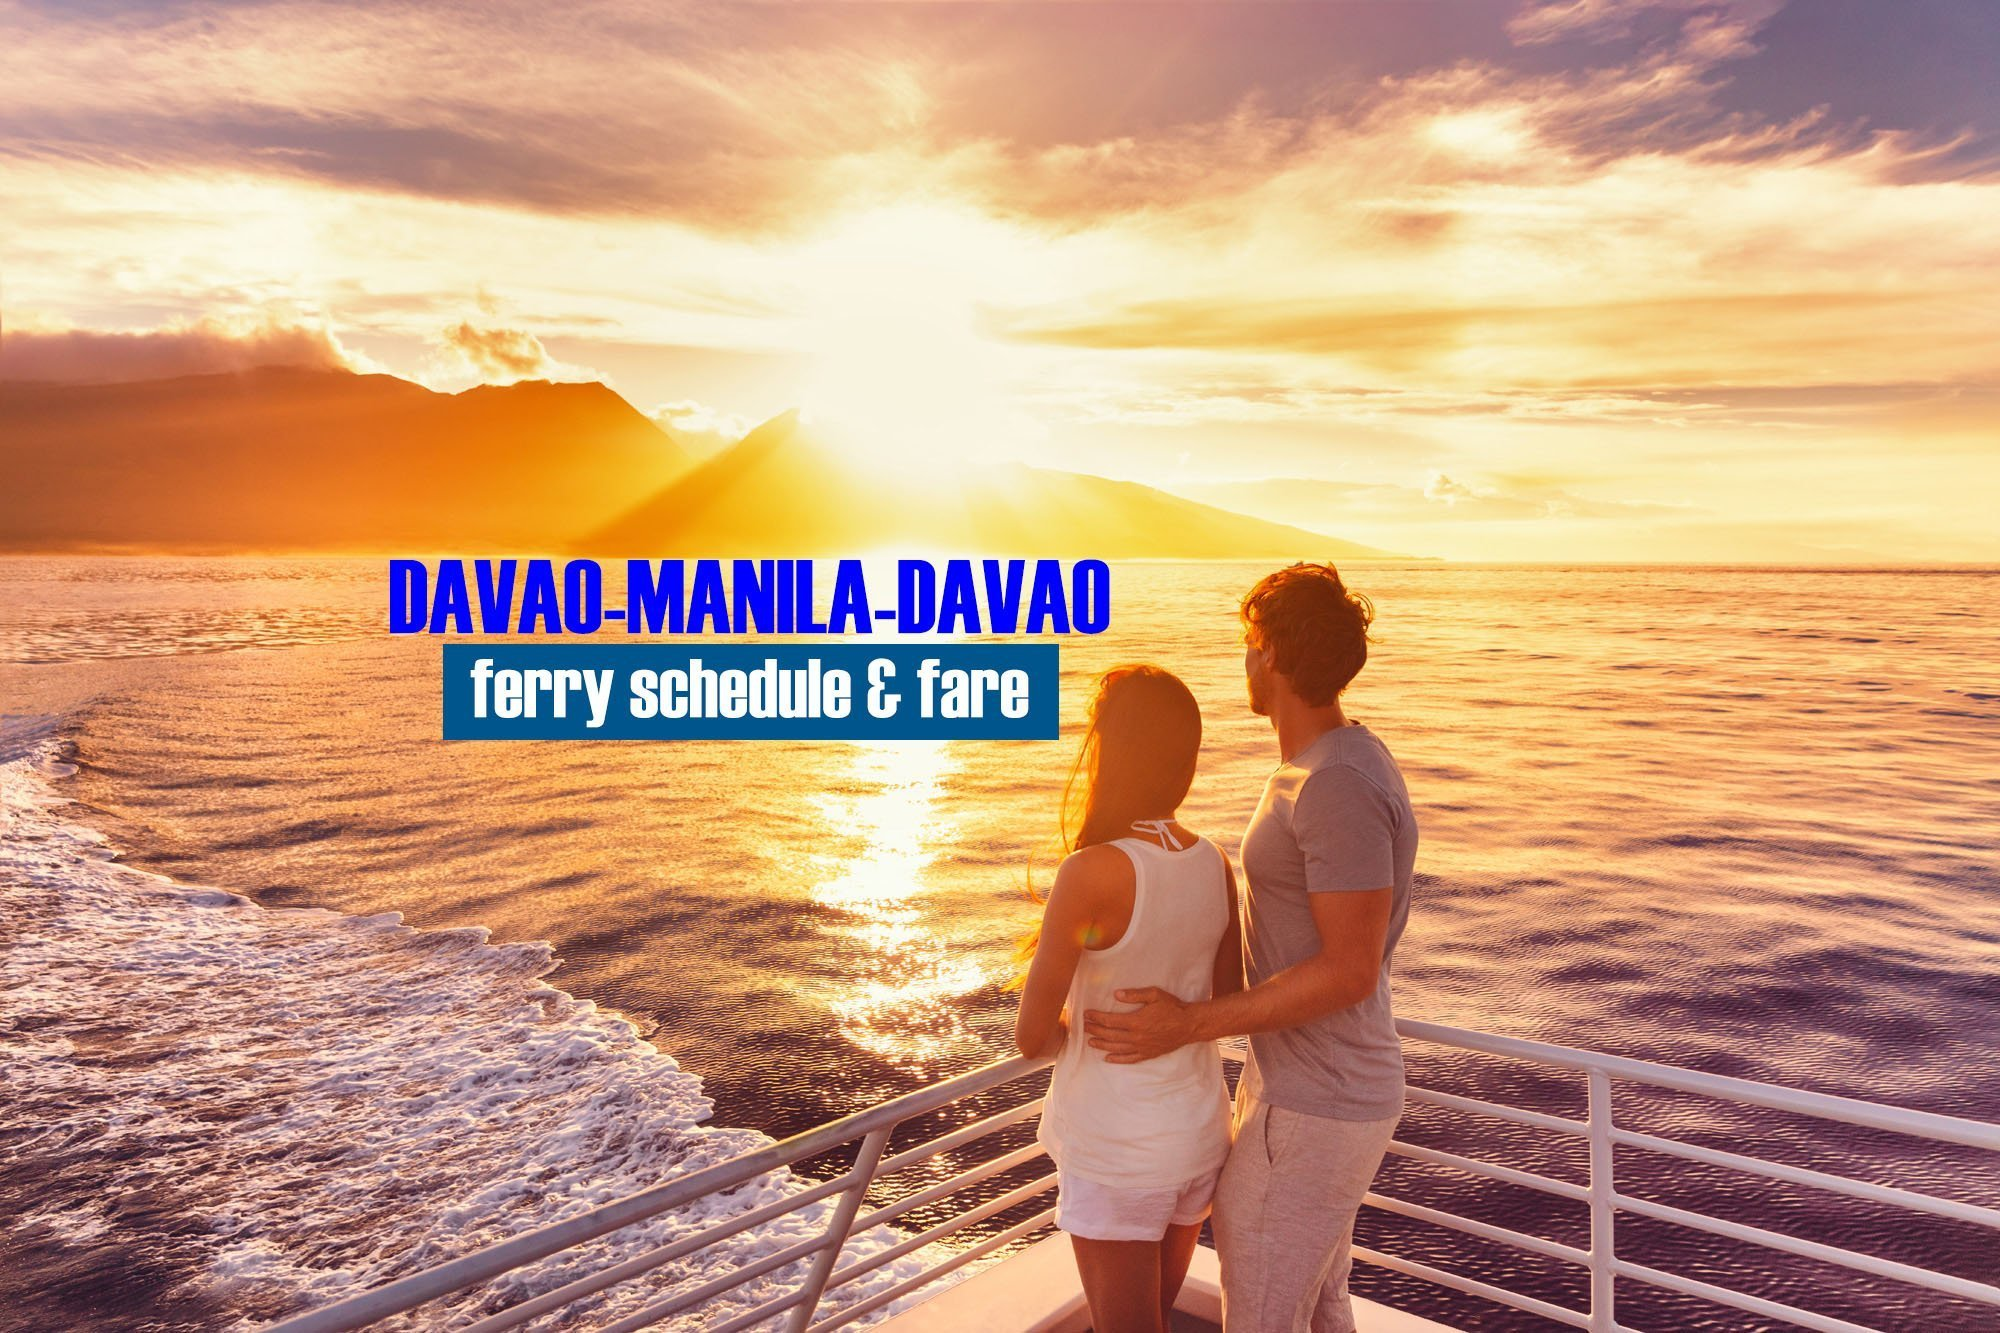 Davao to Manila: 2019 Boat Schedule and Fare